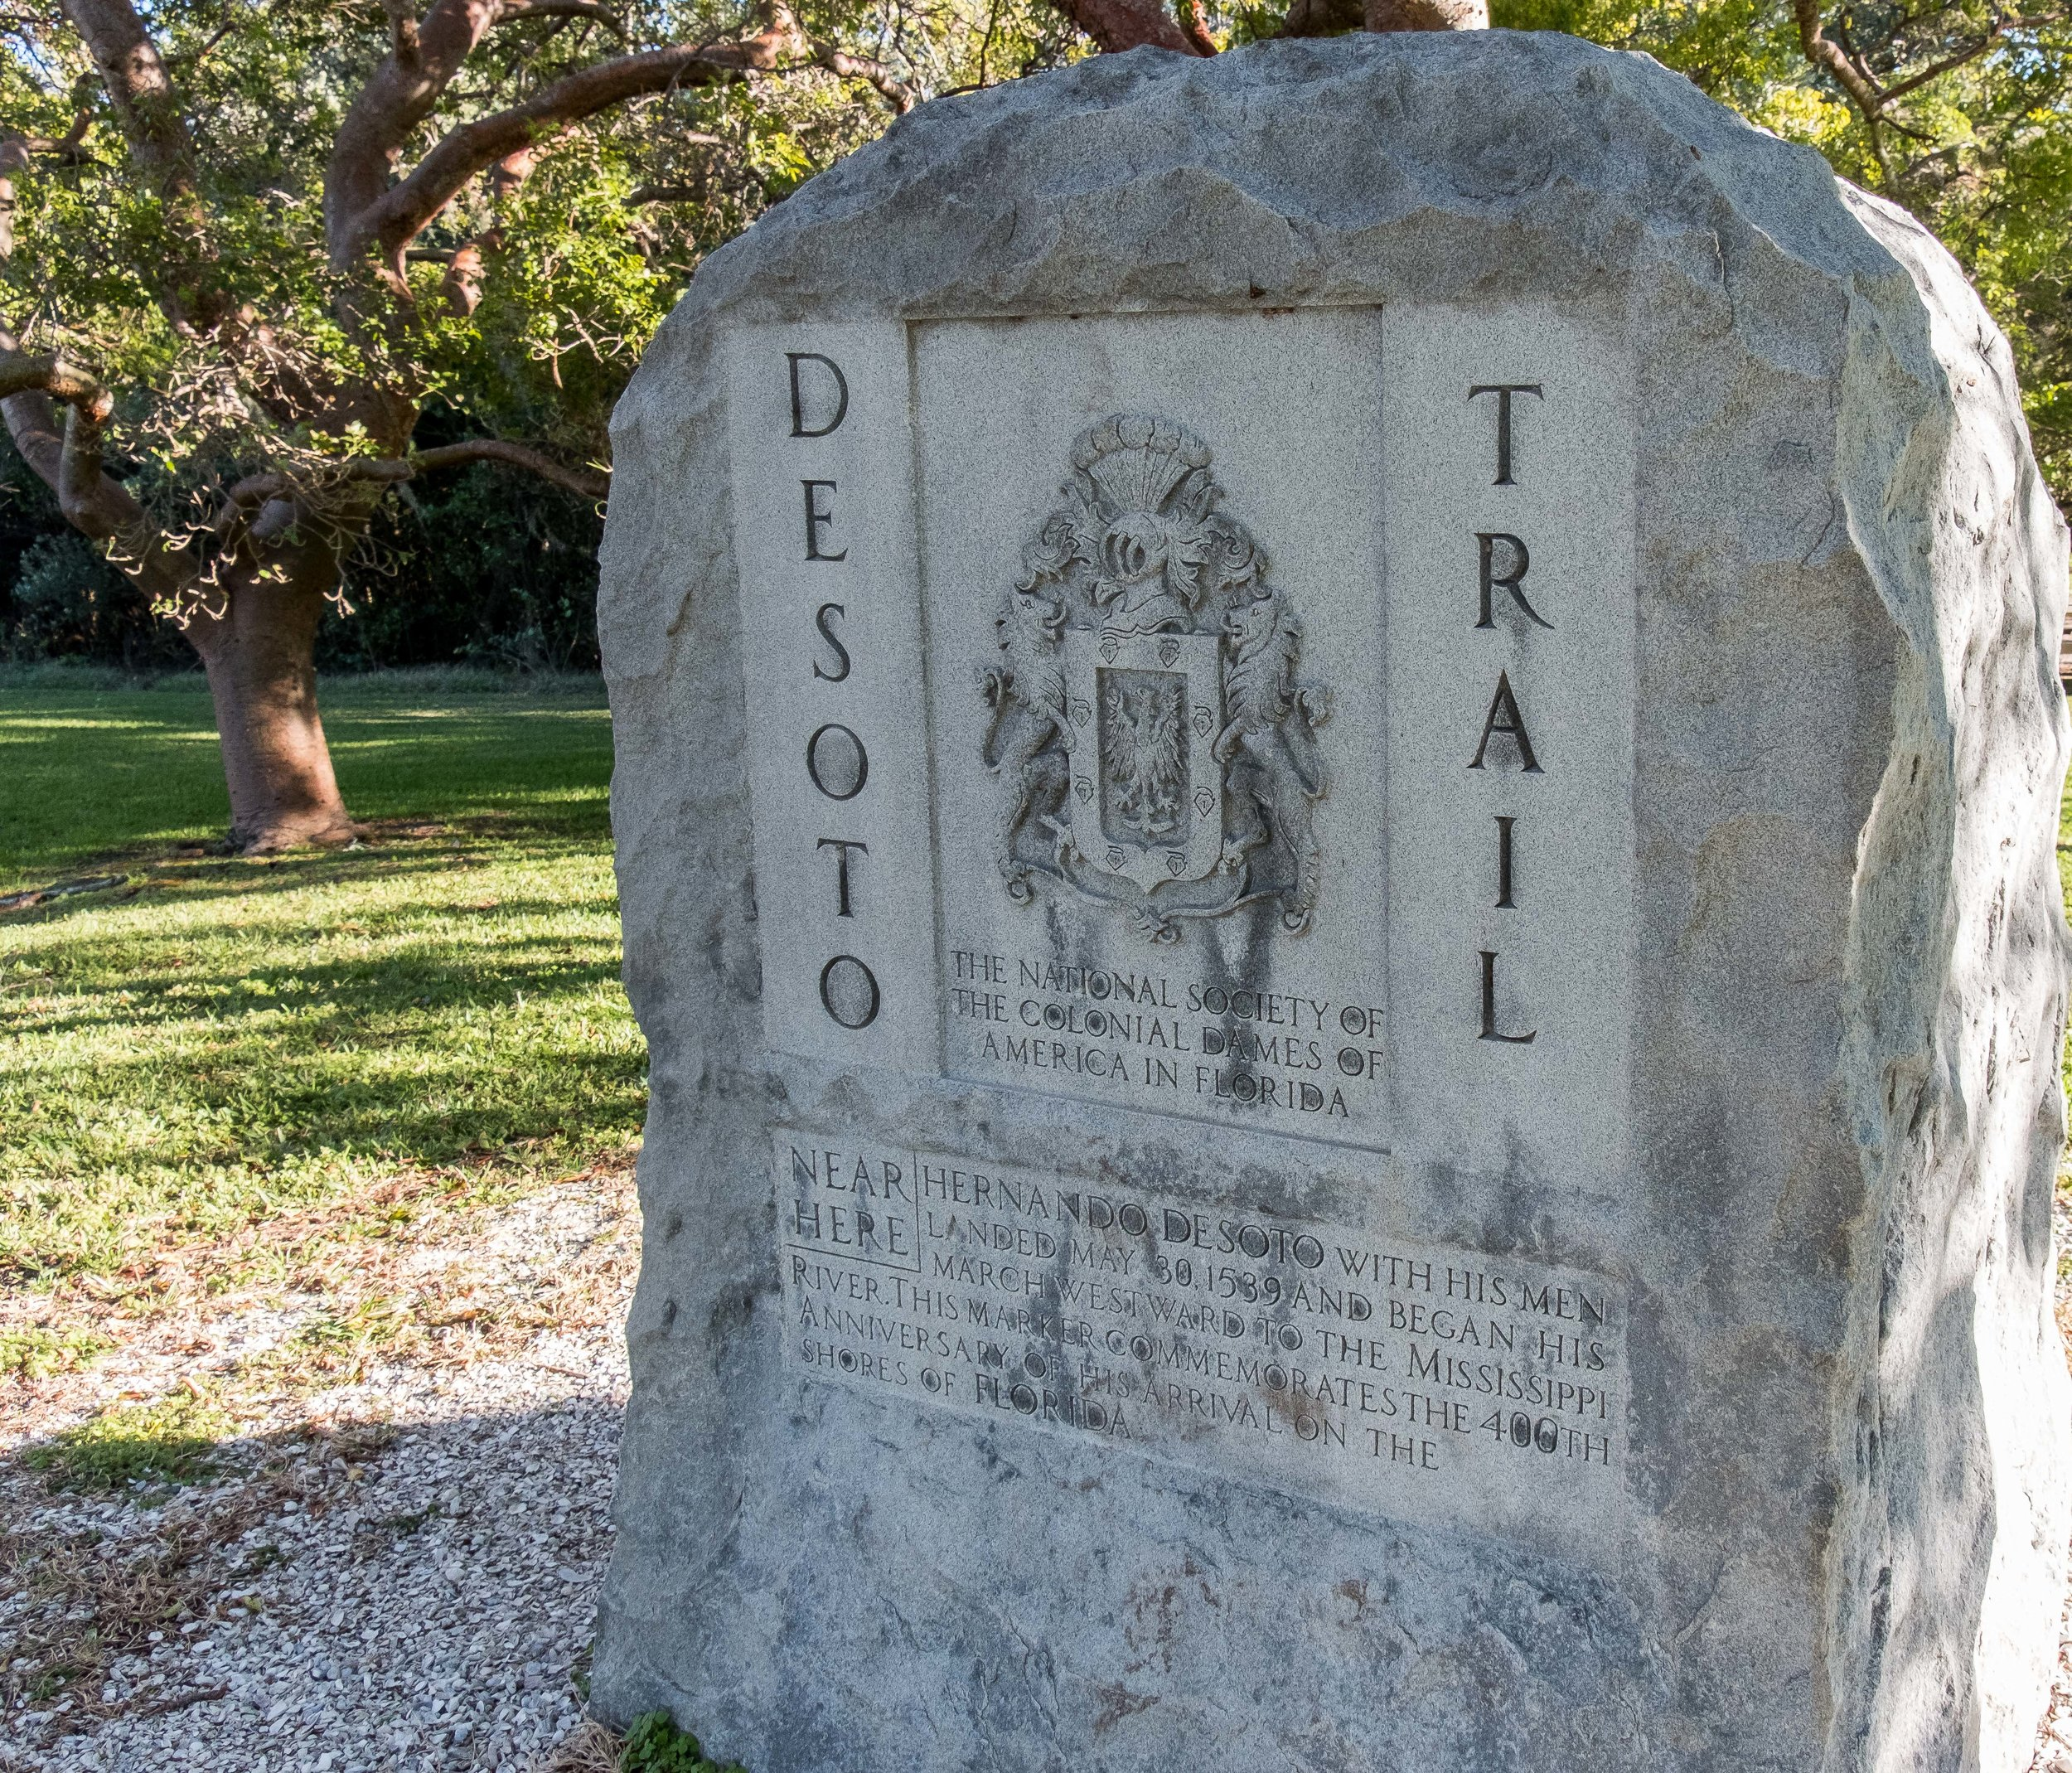 Here is another Florida stone this one to honor a Spanish explorer, De Soto.